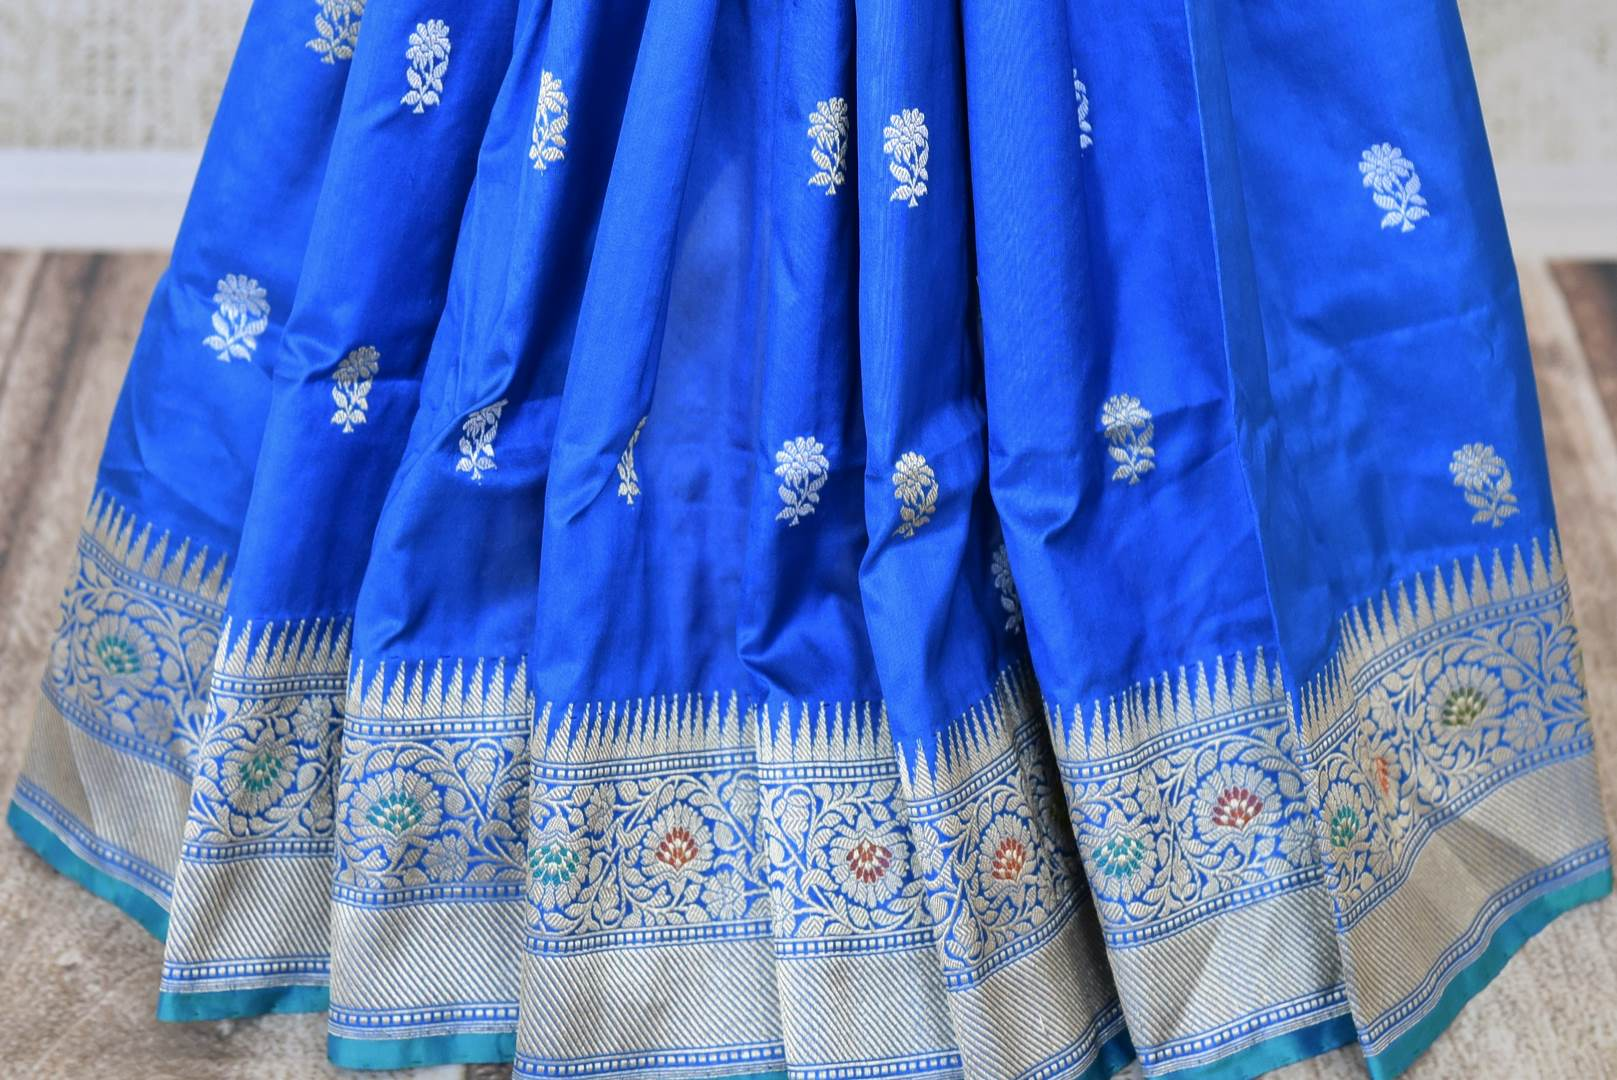 Buy blue Banarasi silk sari online in USA with flower buta and zari minakari border. Raise your ethnic style quotient at weddings and special occasions with exquisite Indian sarees from Pure Elegance Indian clothing store in USA. Pick from a tasteful collection of handloom sarees, pure silk sarees, Banarasi saris. Shop now.-pleats